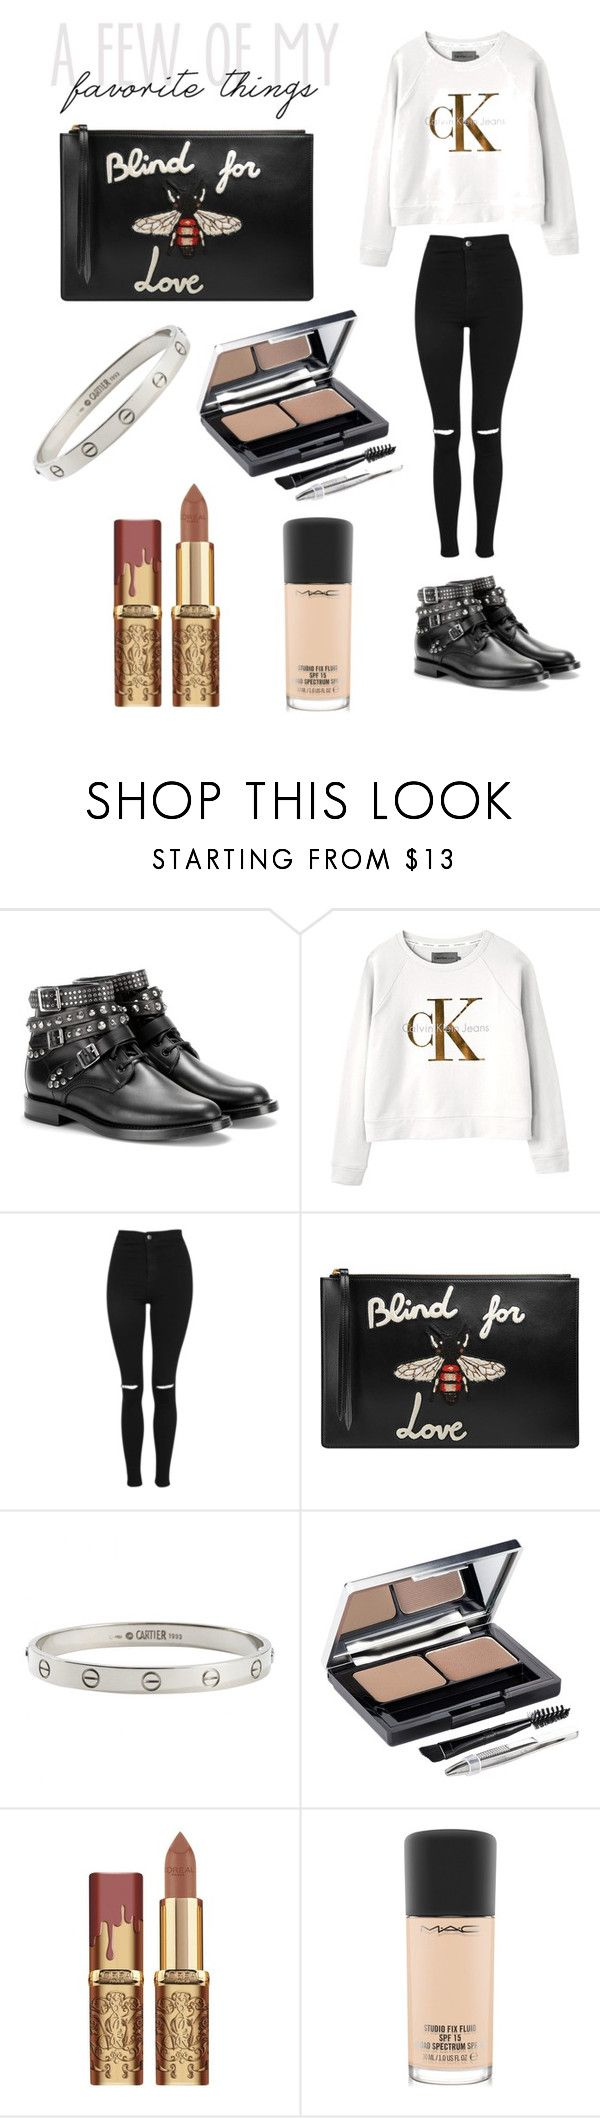 """""""Piscis"""" by scarcia-valentina ❤ liked on Polyvore featuring Yves Saint Laurent, Calvin Klein, Topshop, Gucci, Cartier, L'Oréal Paris, MAC Cosmetics and zodiaccollection"""